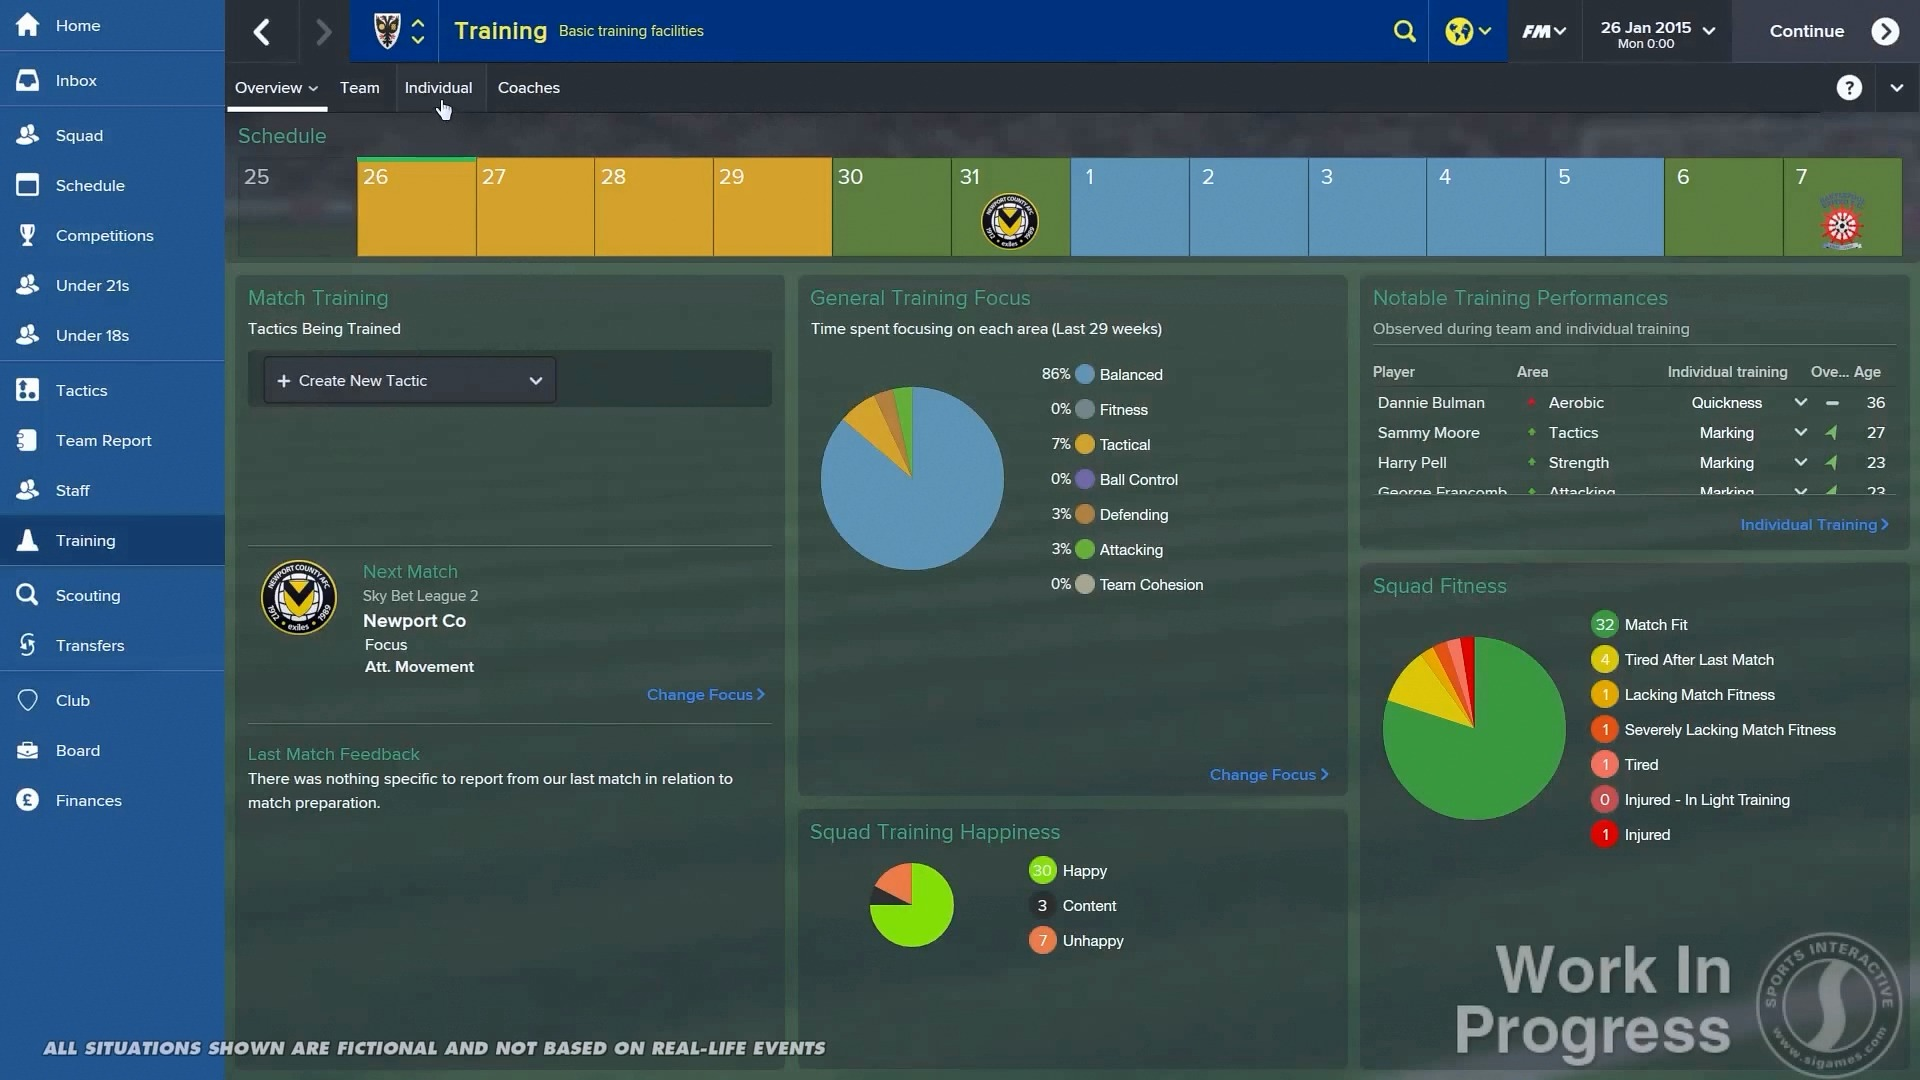 Football_Manager_2015_Training_1